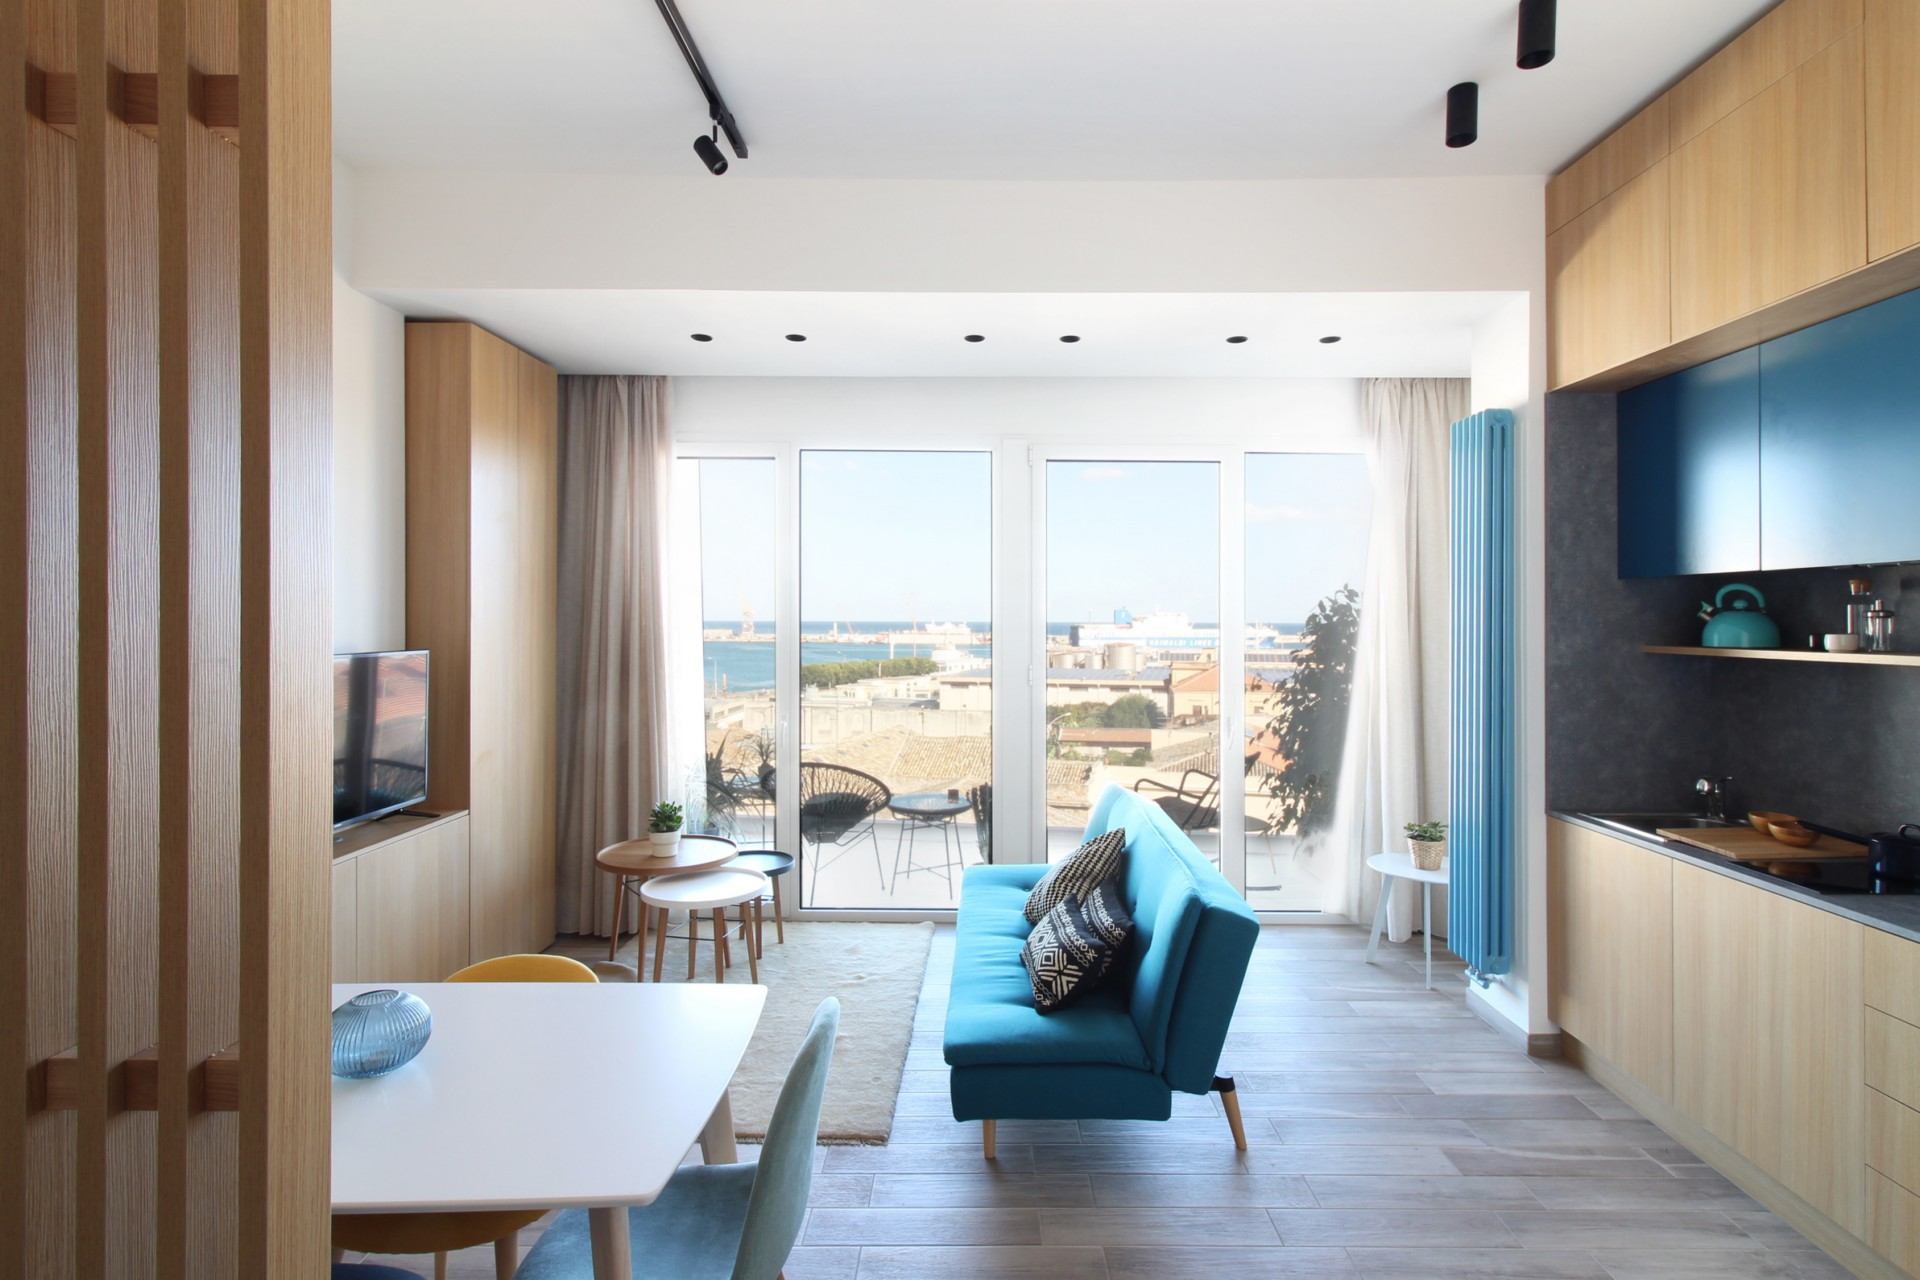 The Seaview Apartments an interior design project in Palermo by